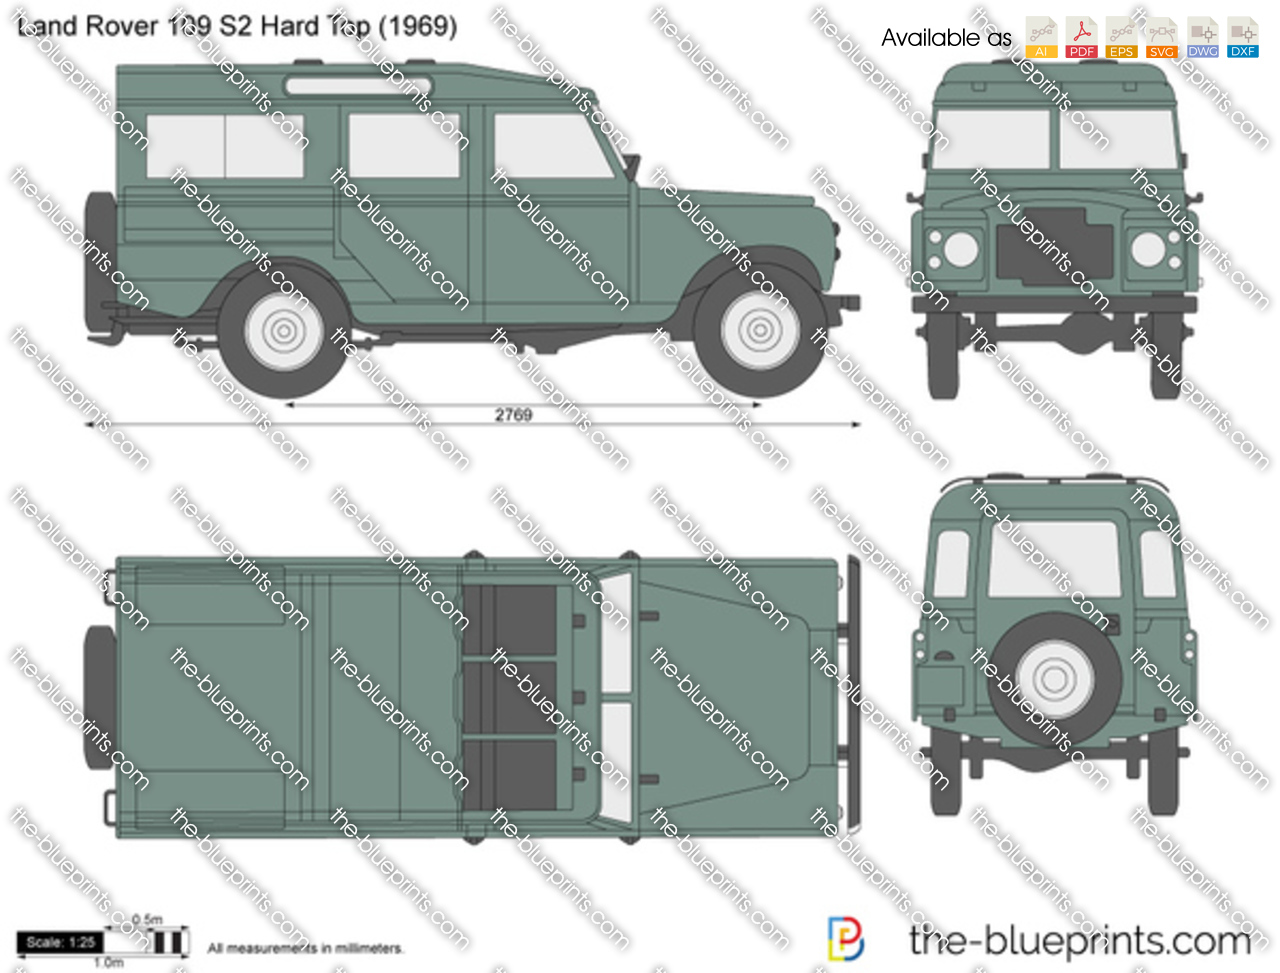 Land Rover 109 S2 Hard Top 1964